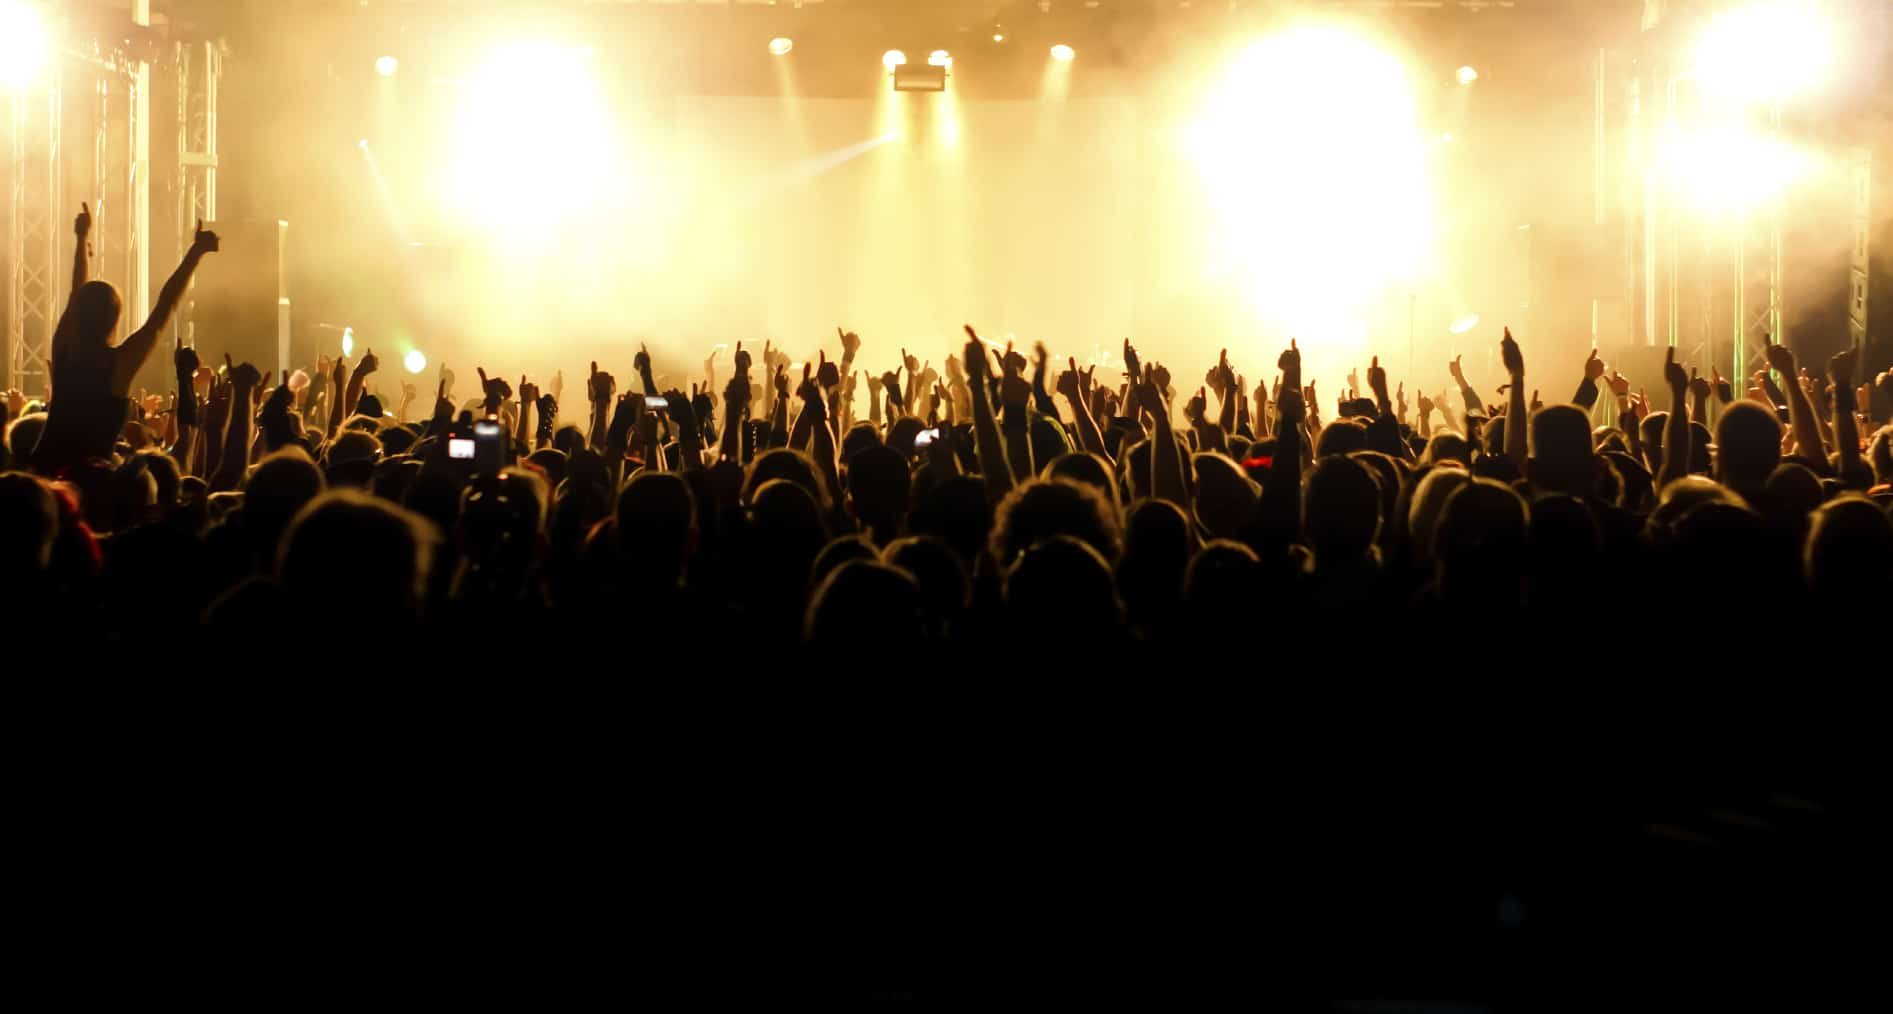 live music wallpaper with - photo #30